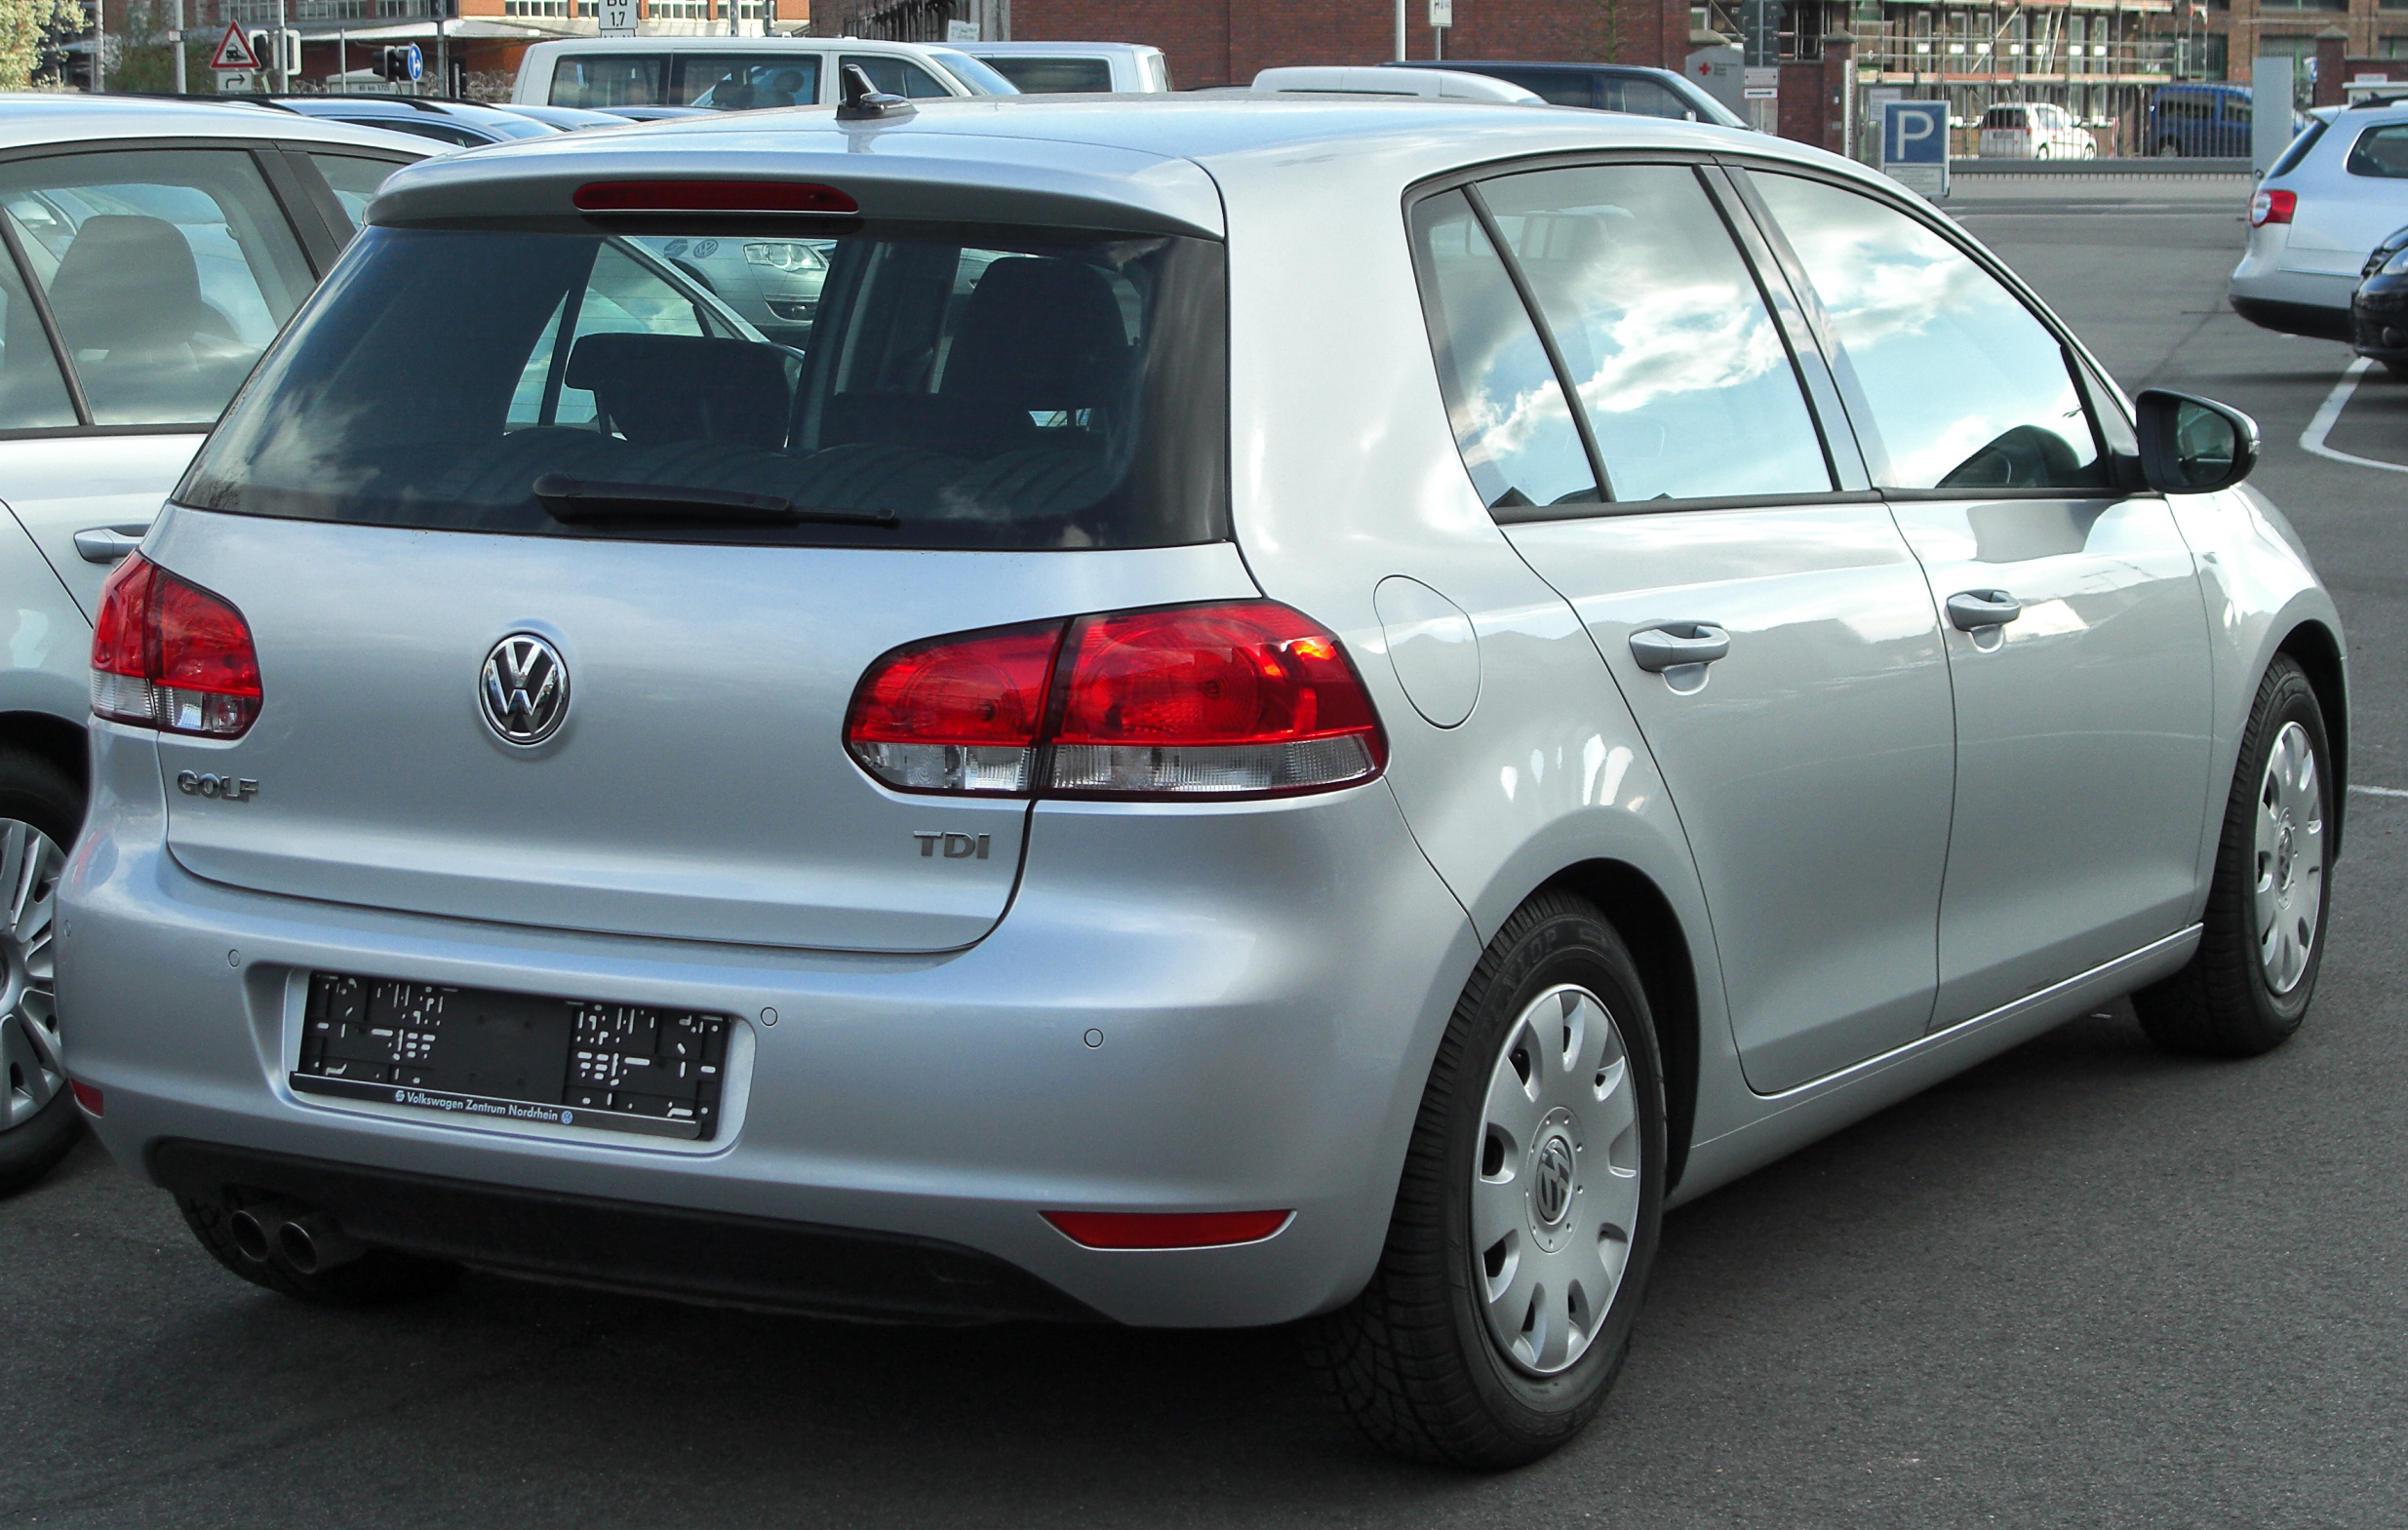 vw golf vi tdi rear wikipedia. Black Bedroom Furniture Sets. Home Design Ideas